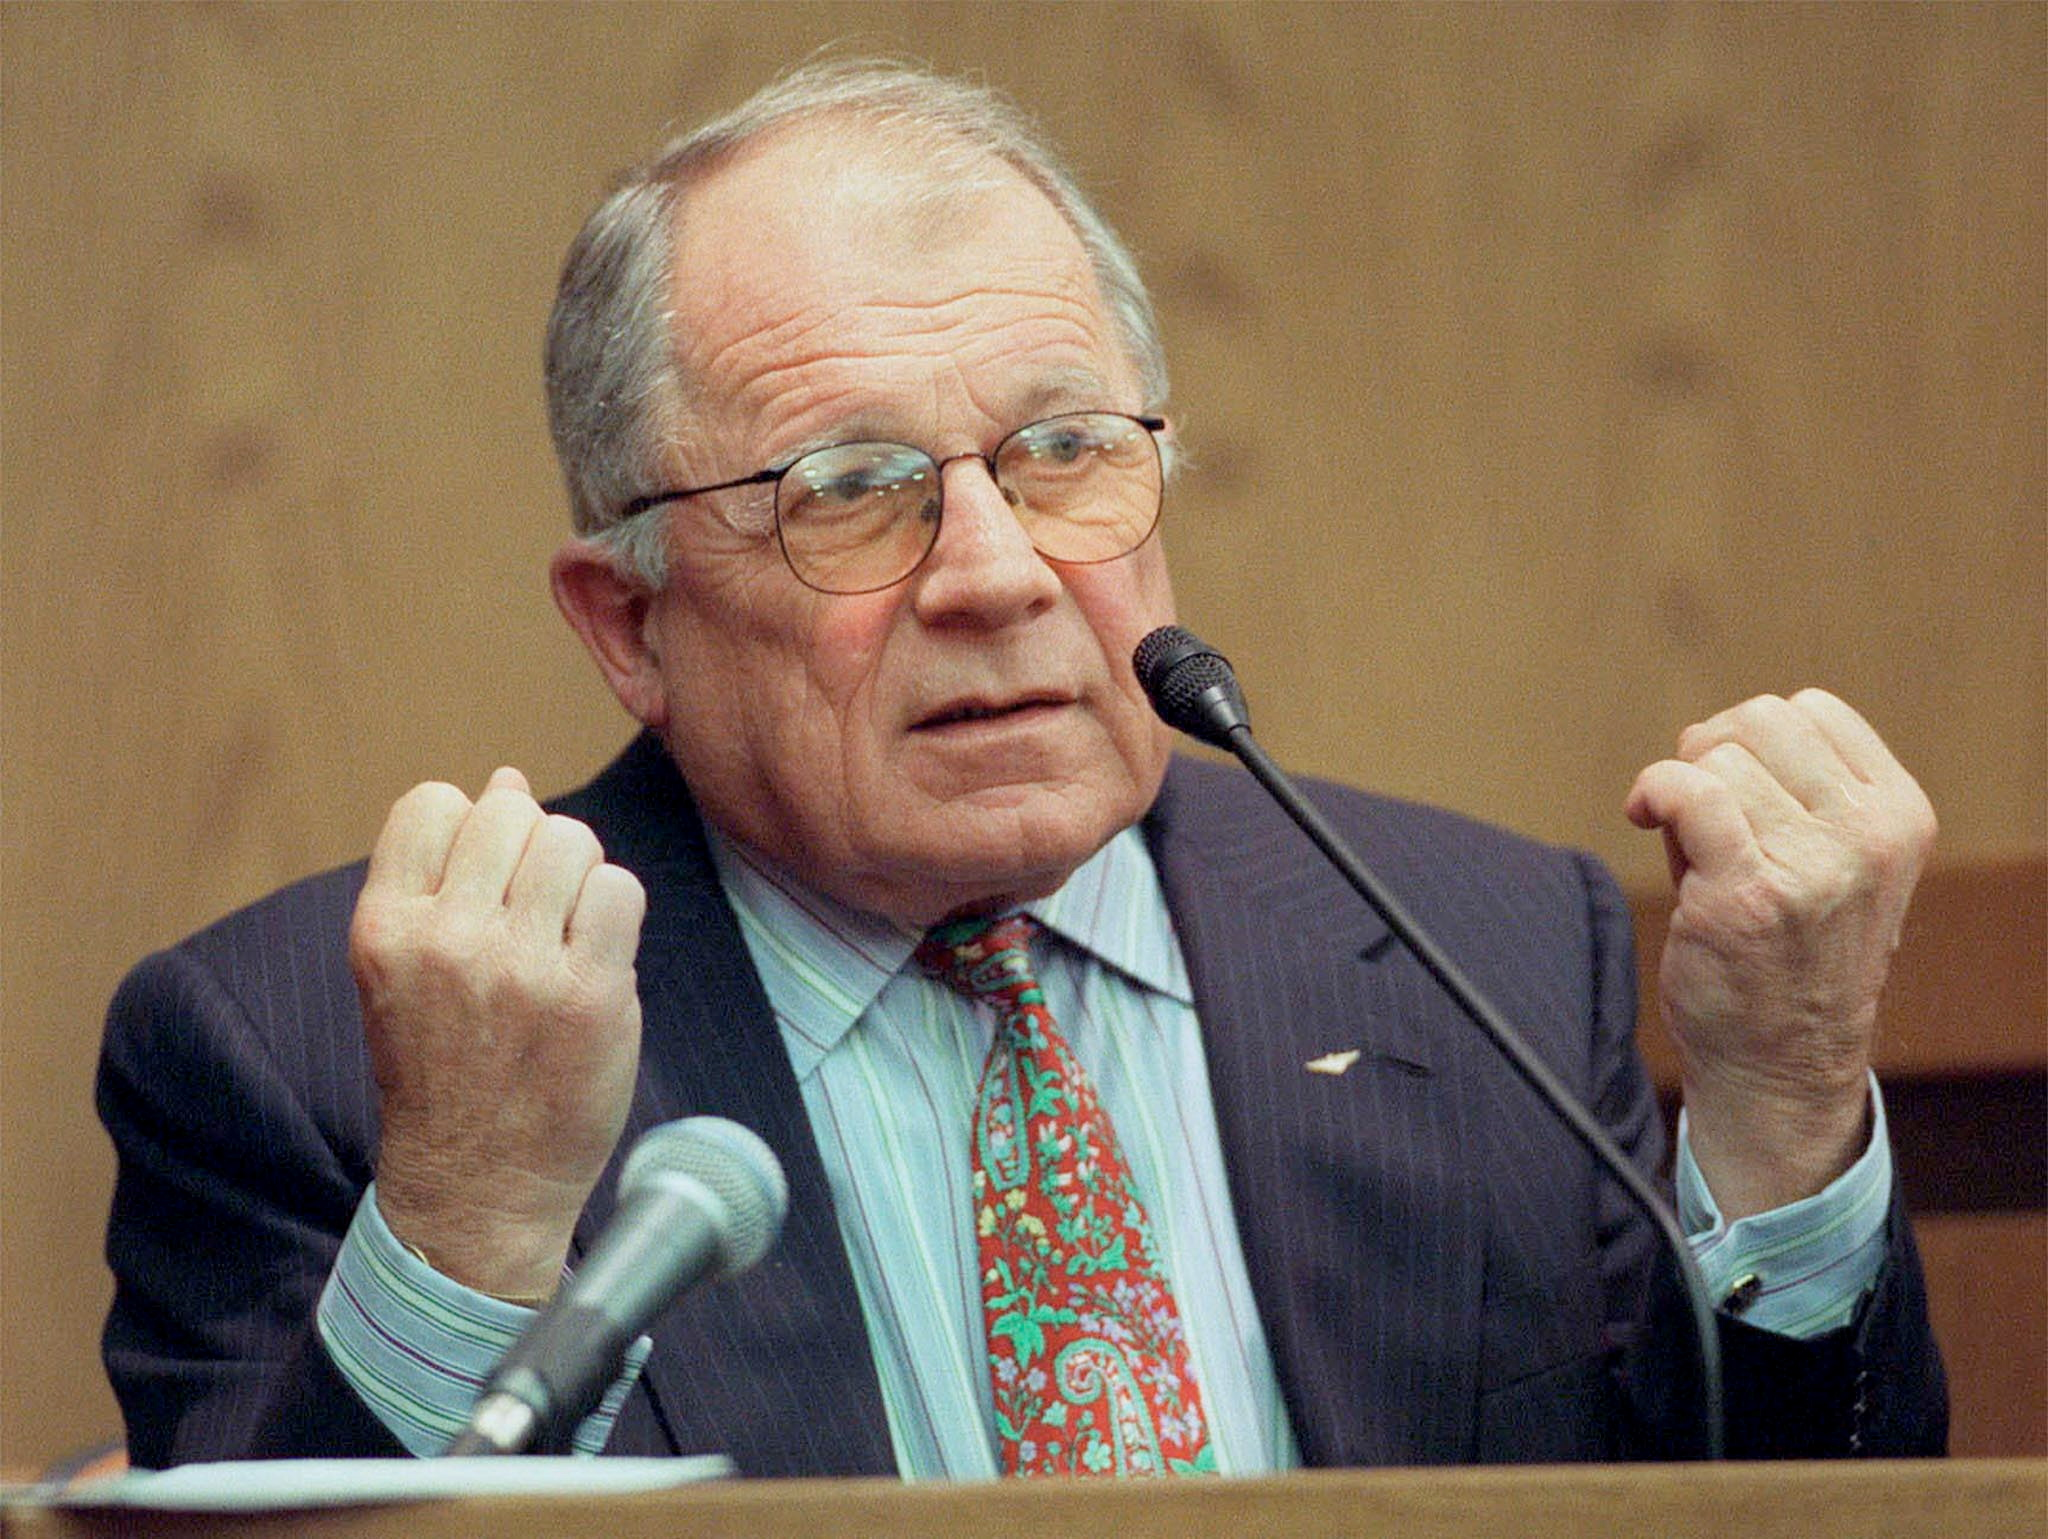 DefenSe attorney F. Lee Bailey testifies during the opening day in the jury trial of a wrongful imprisonment lawsuit against the state of Ohio brought by Sam Reese Sheppard February 14 in Cleveland.